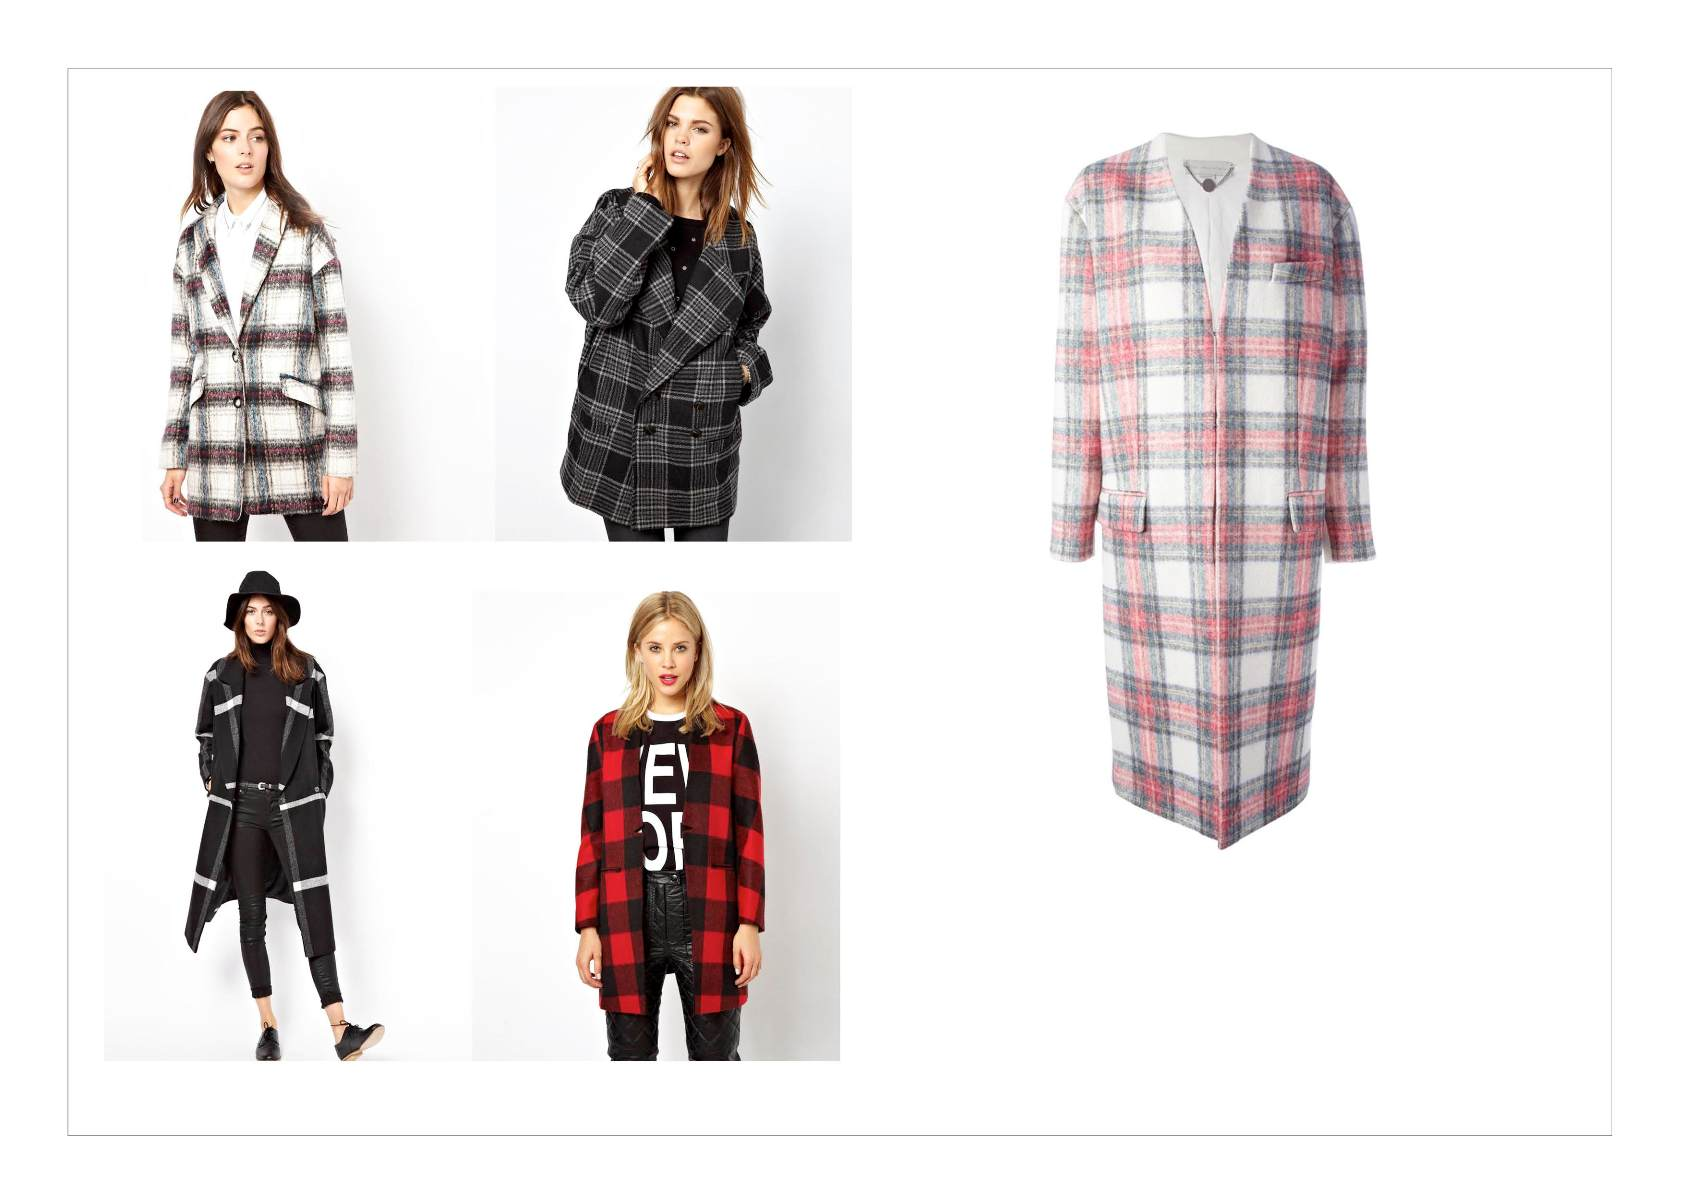 checked coats | #fashion #industryfiles #coat #winter #style #outfit